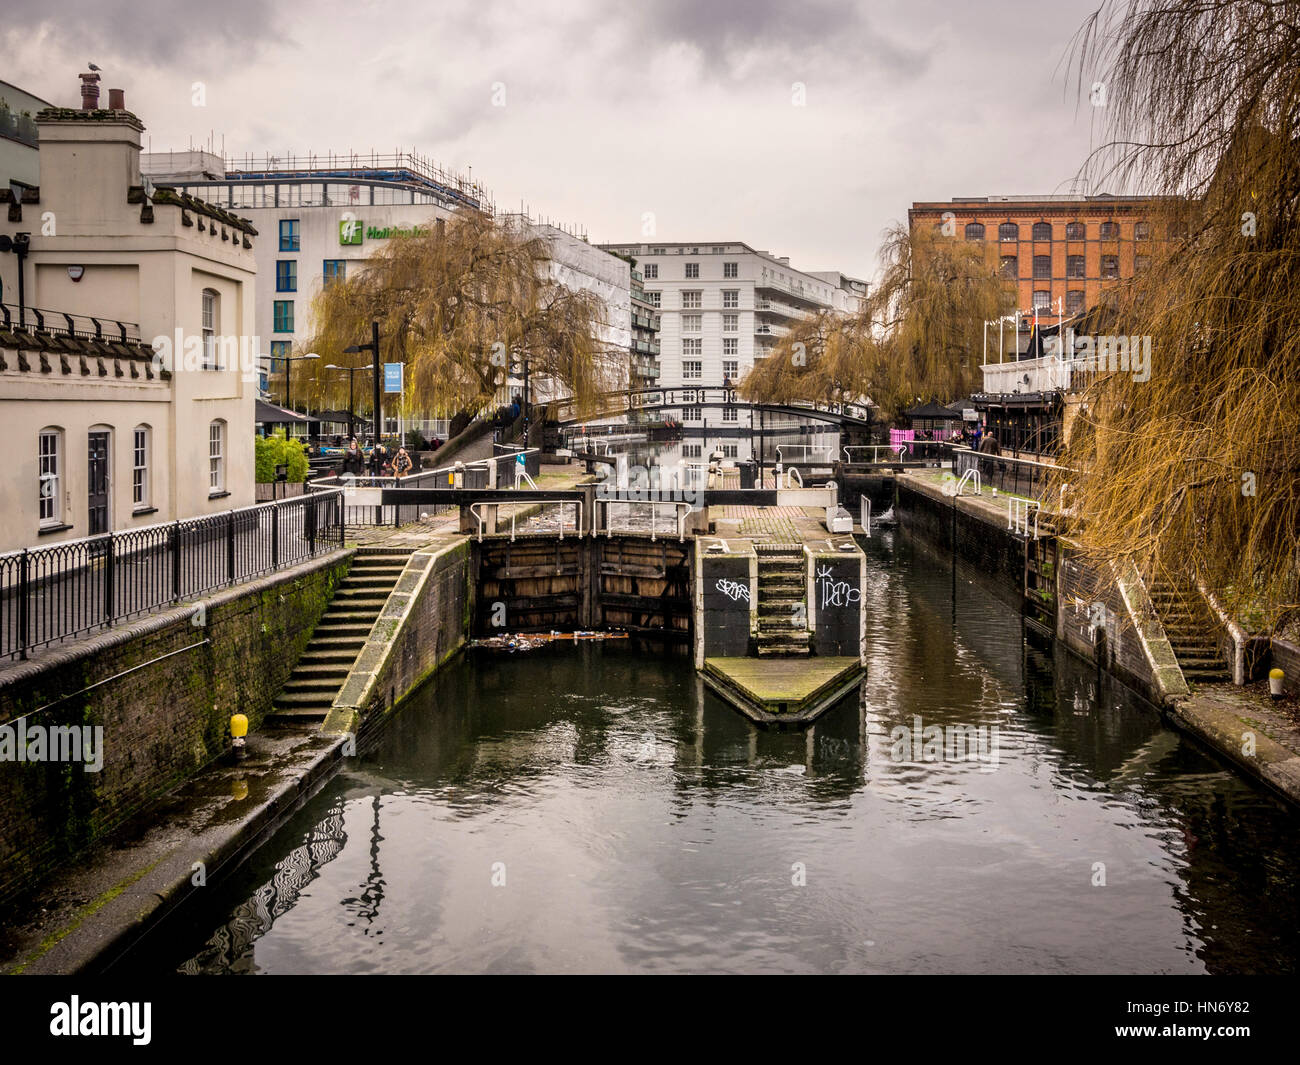 Camden Lock on the Grand Union (Regent's) Canal, London, UK. - Stock Image